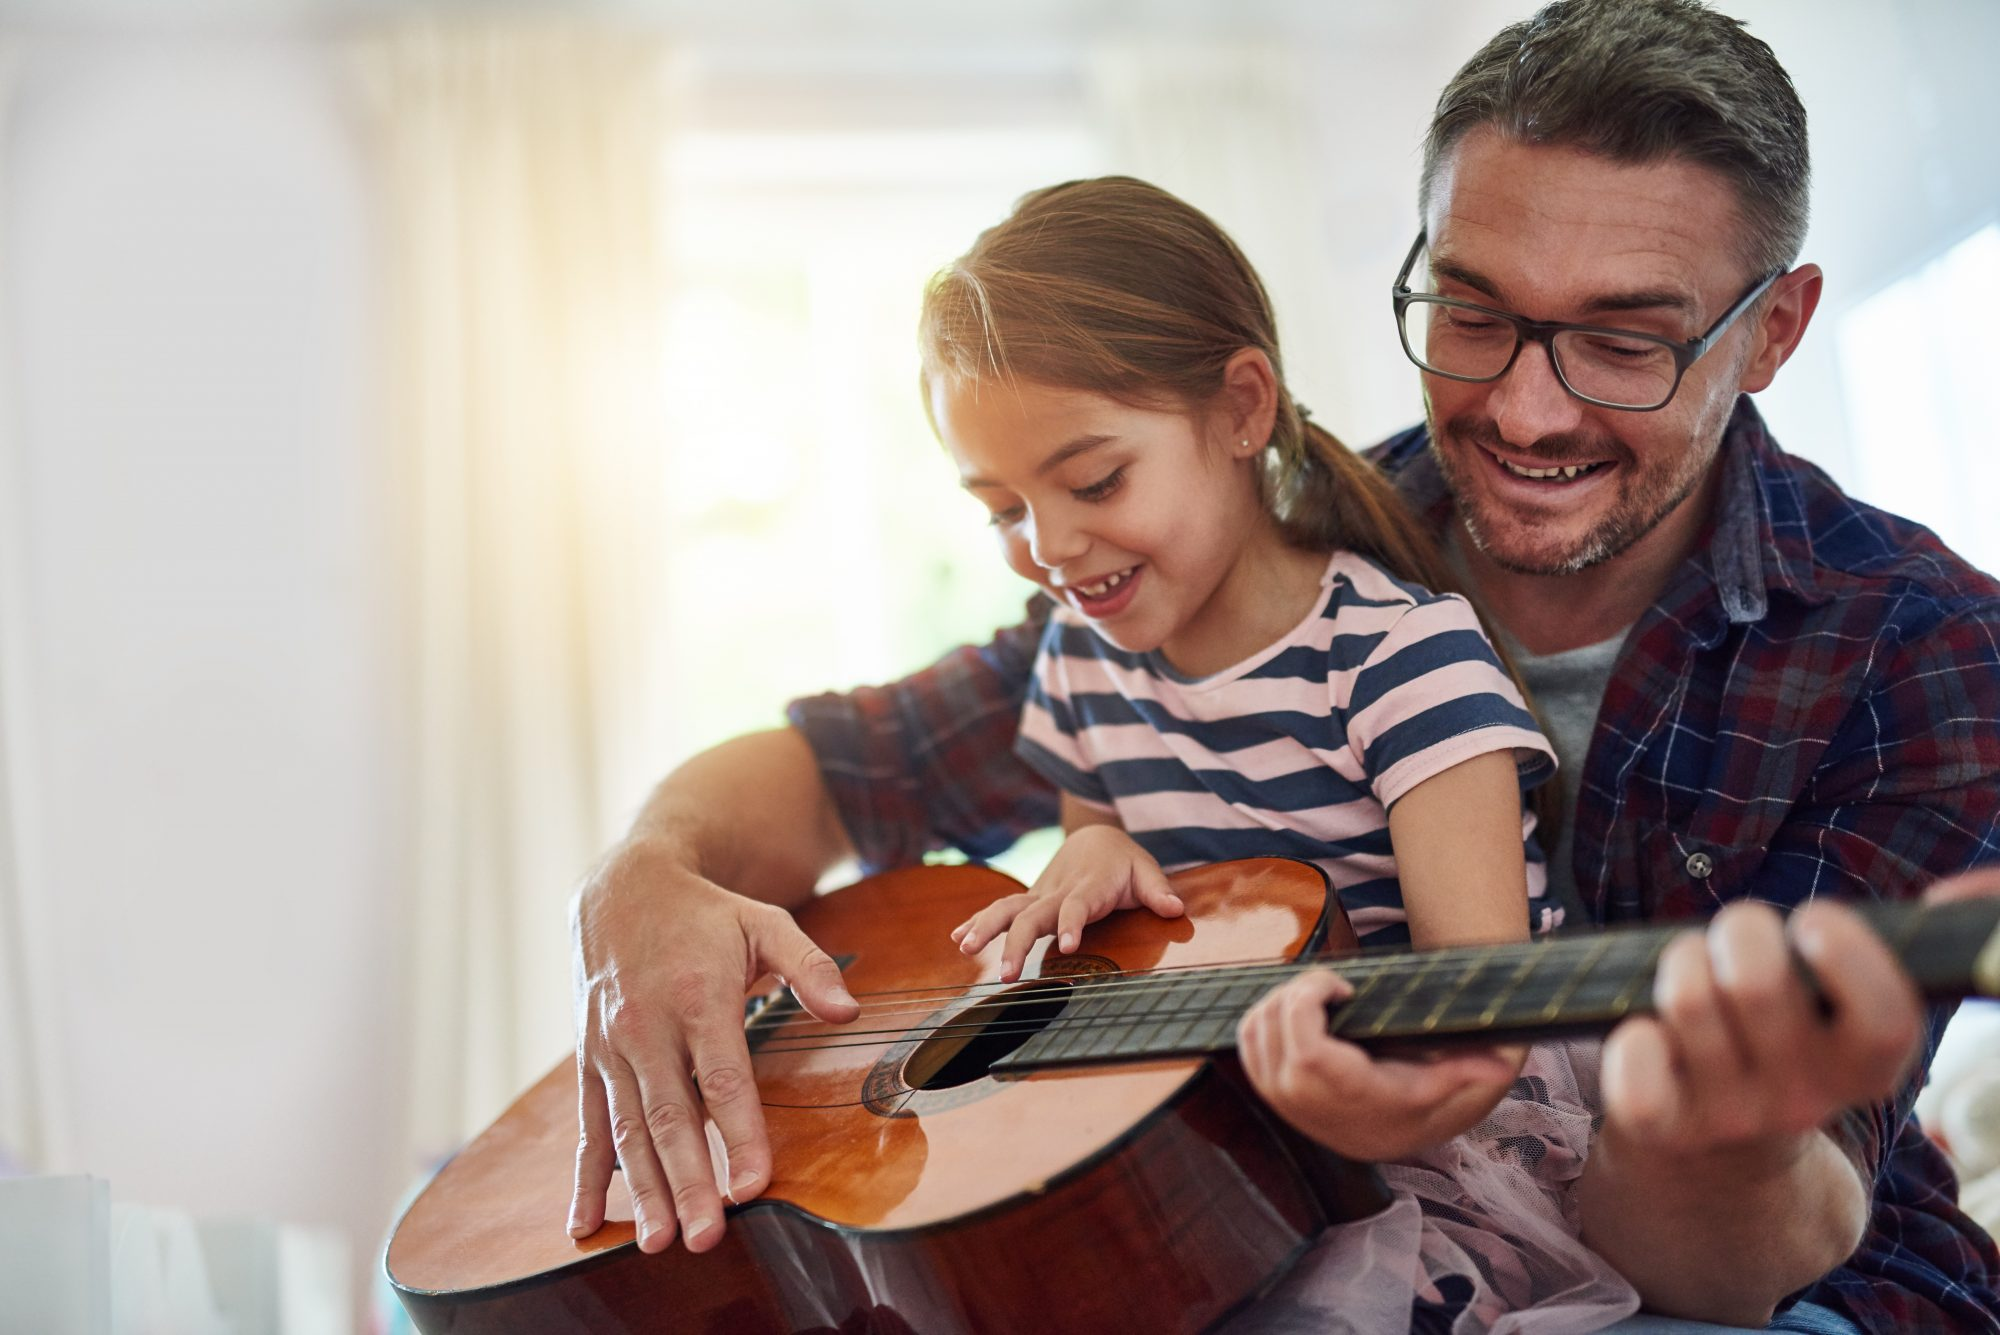 Father and daughter playing the guitar together.